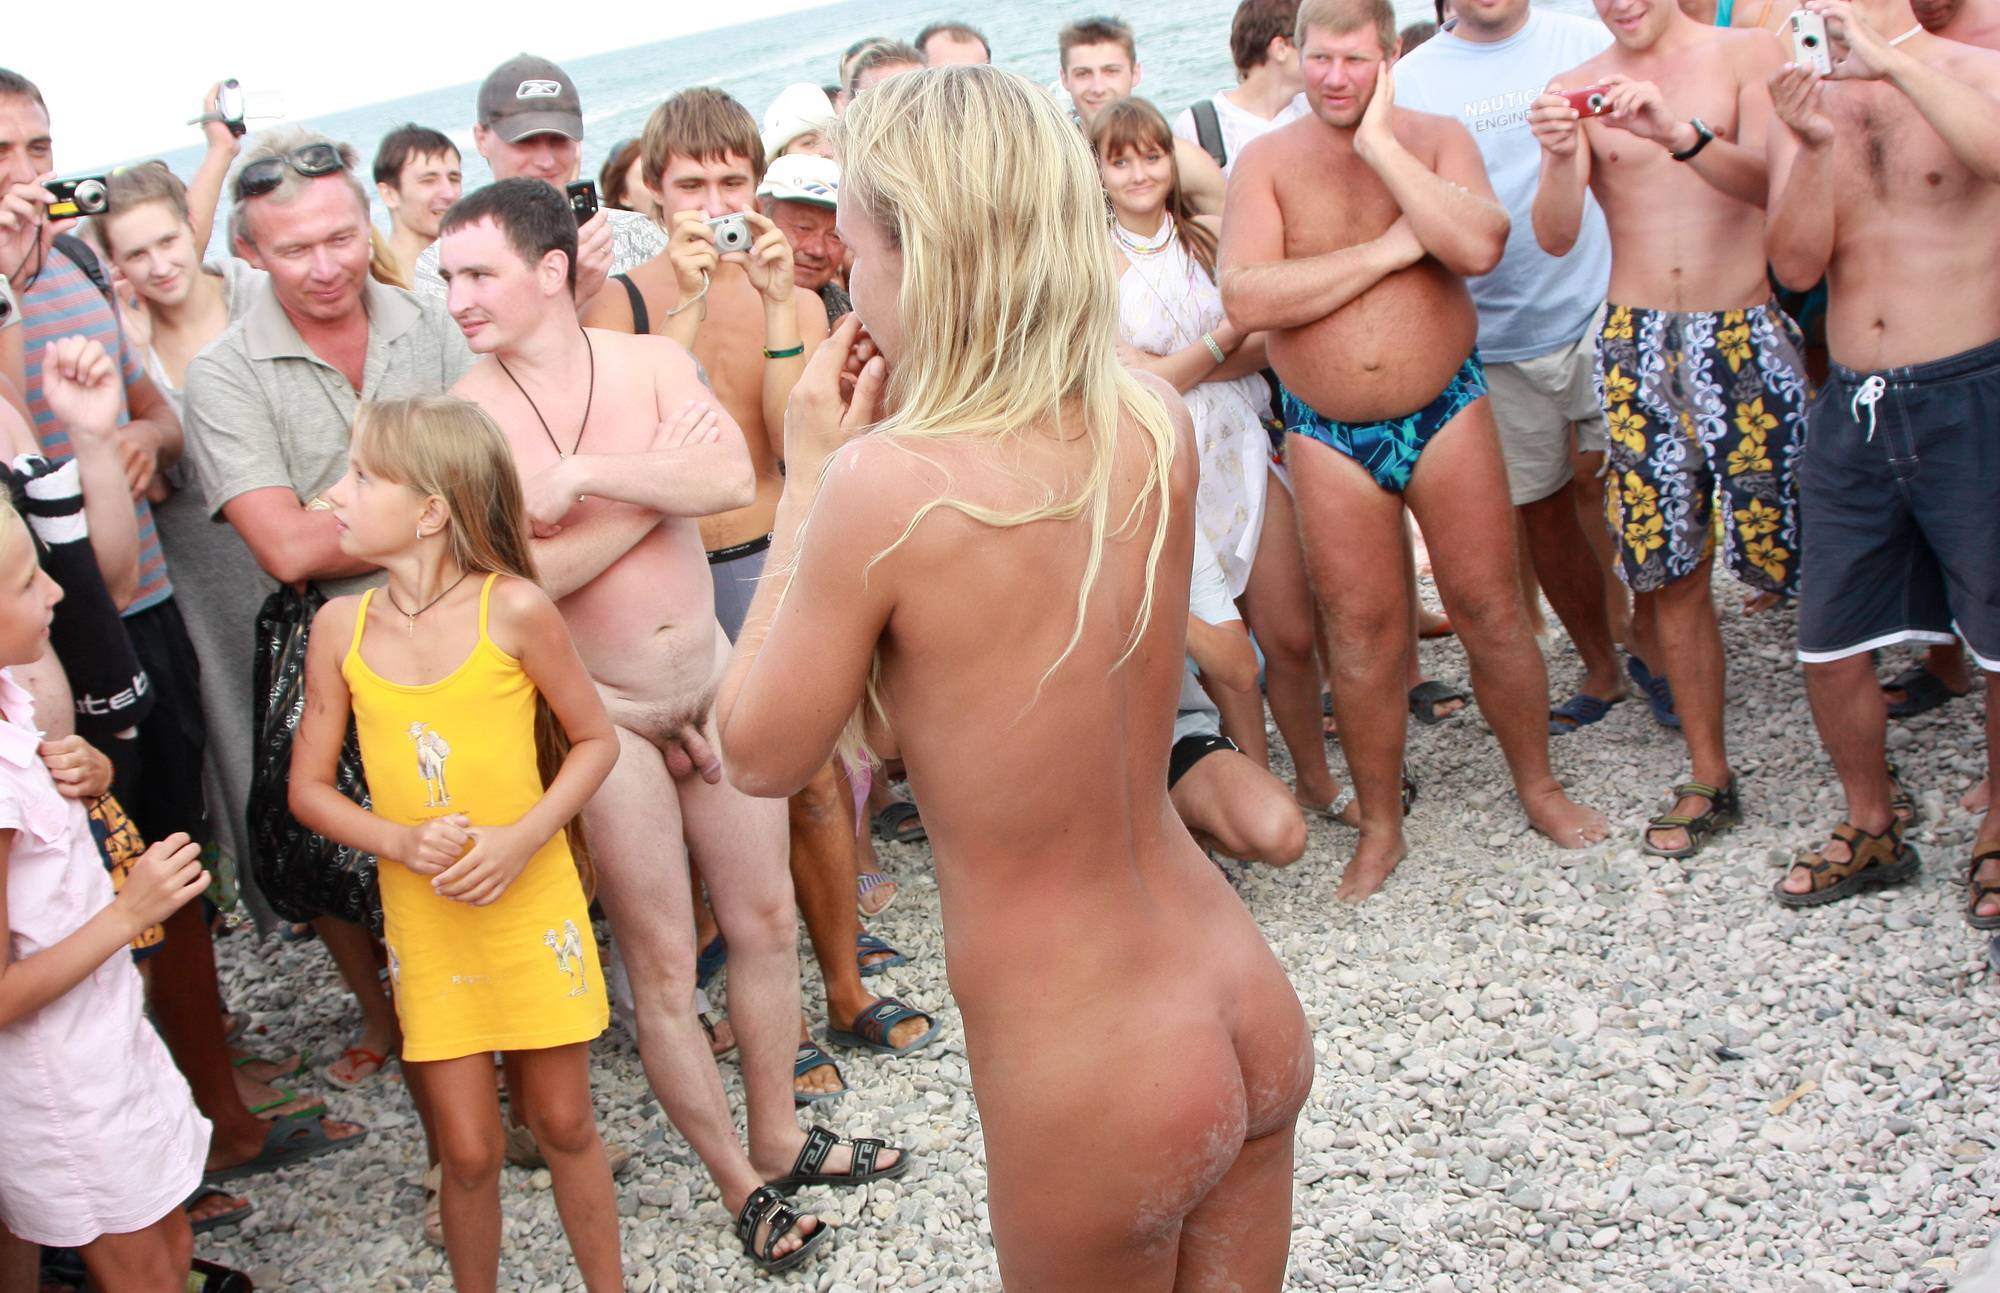 Pure Nudism Images-Neptune Blondes Dance - 2